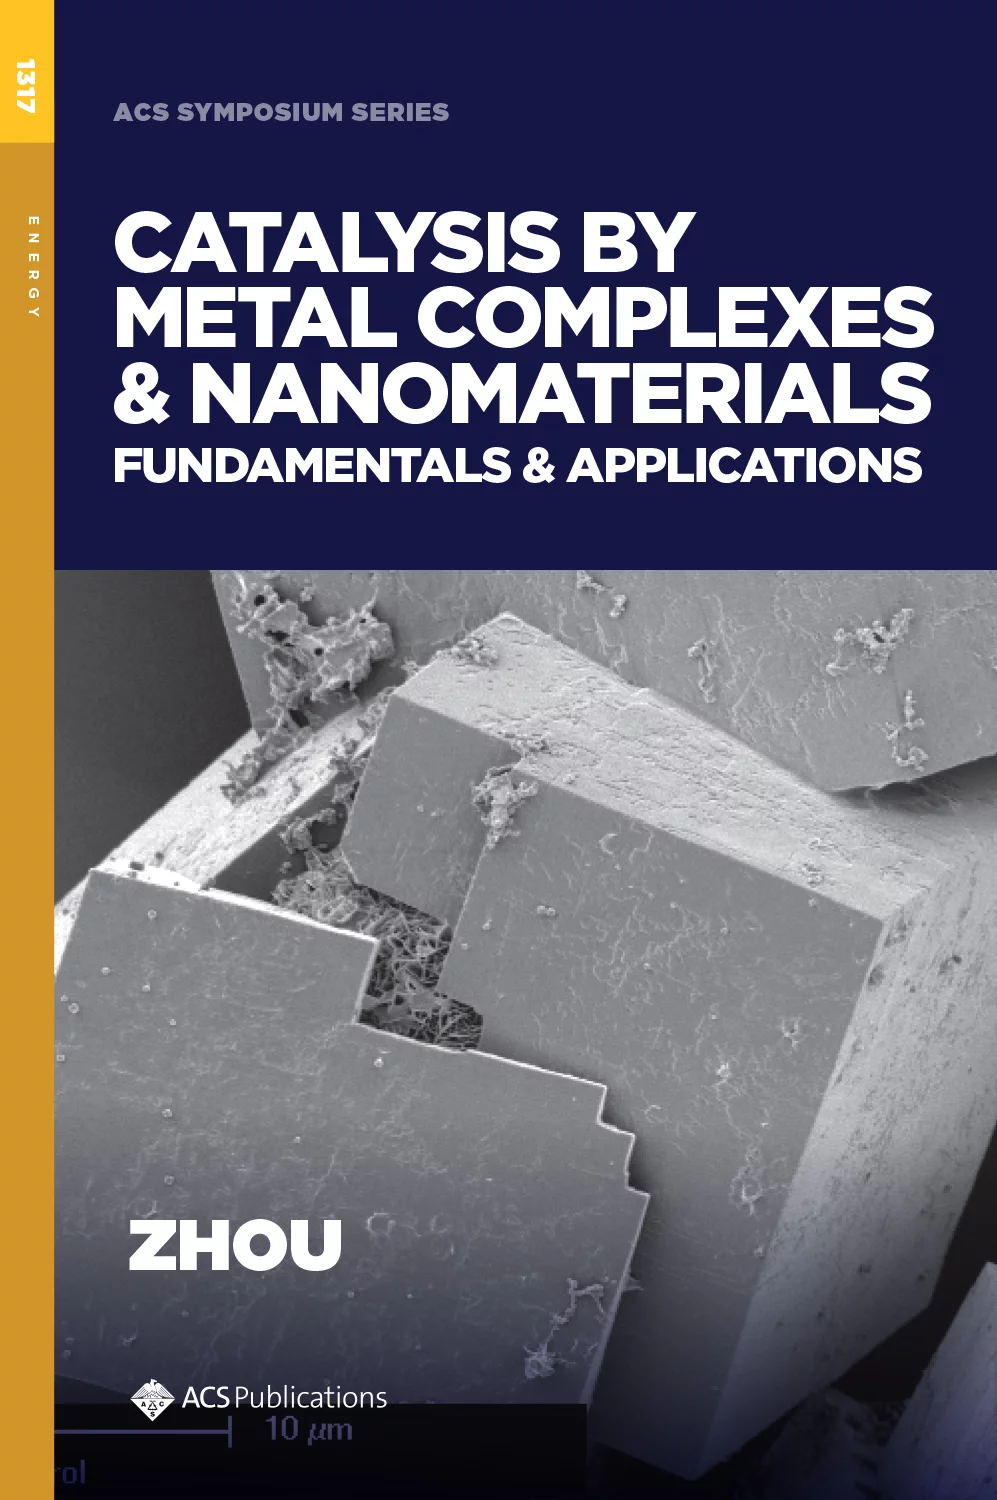 Catalysis by Metal Complexes and Nanomaterials: Fundamentals and Applications